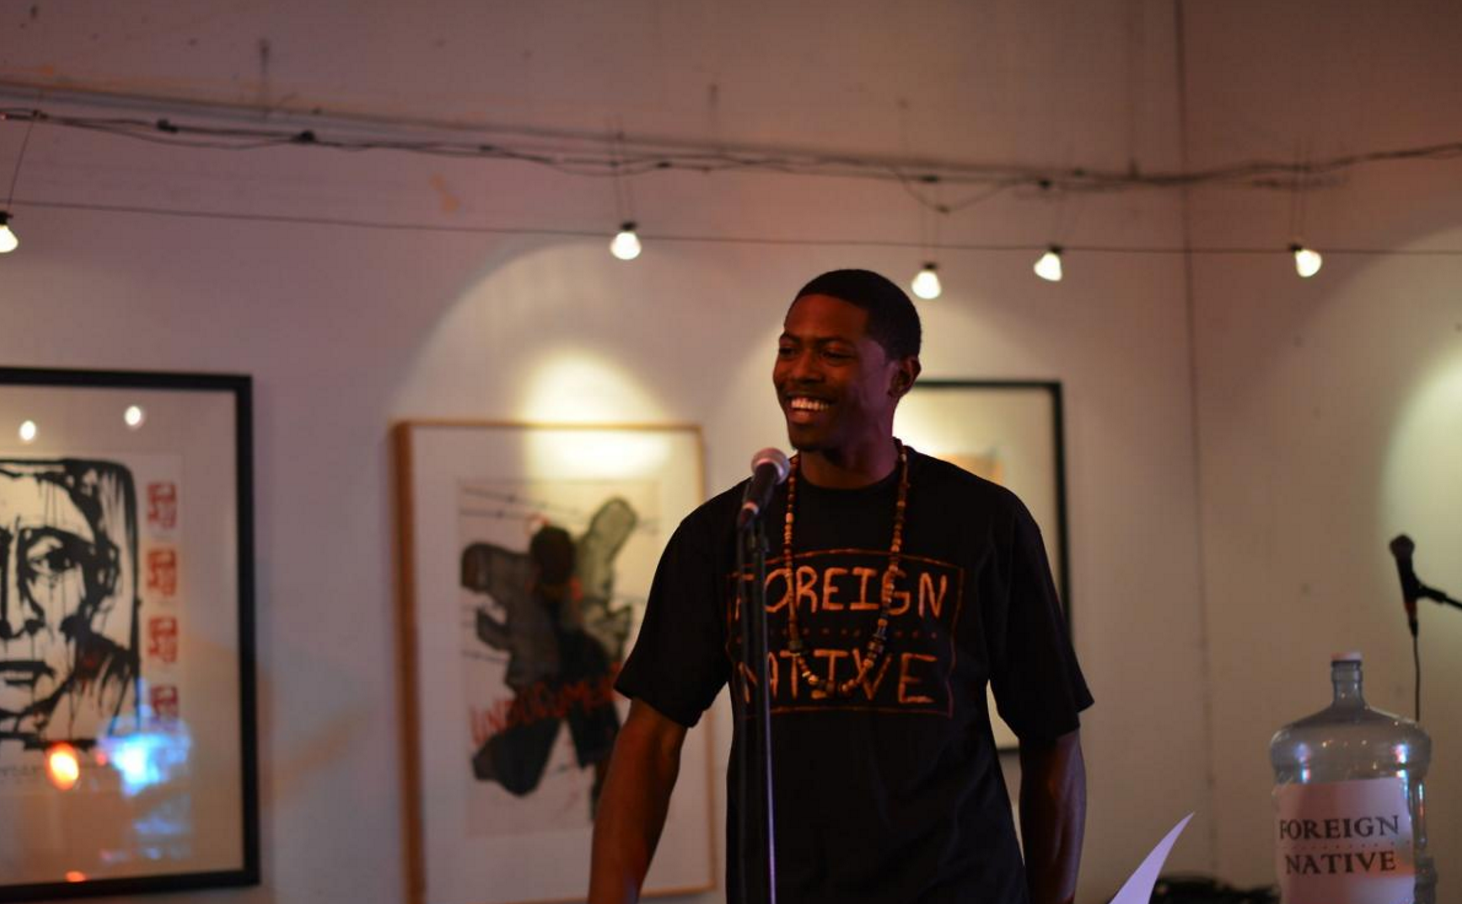 Penny 4 Your Thoughts: Poet-Mentor Dre-T founds open mic program